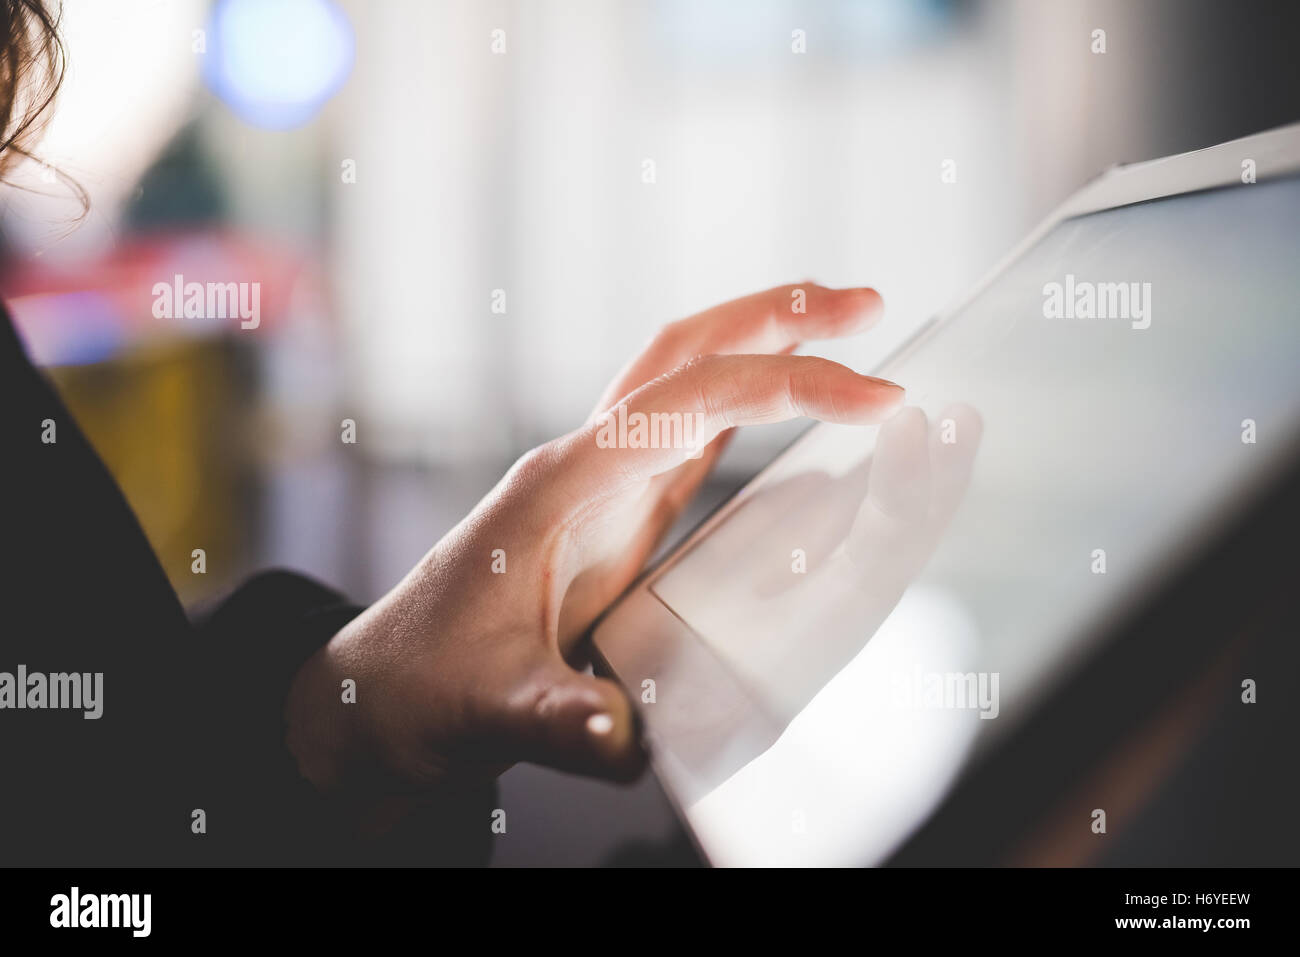 Close up on the hand of young woman using tablet illuminated by screen - Stock Image